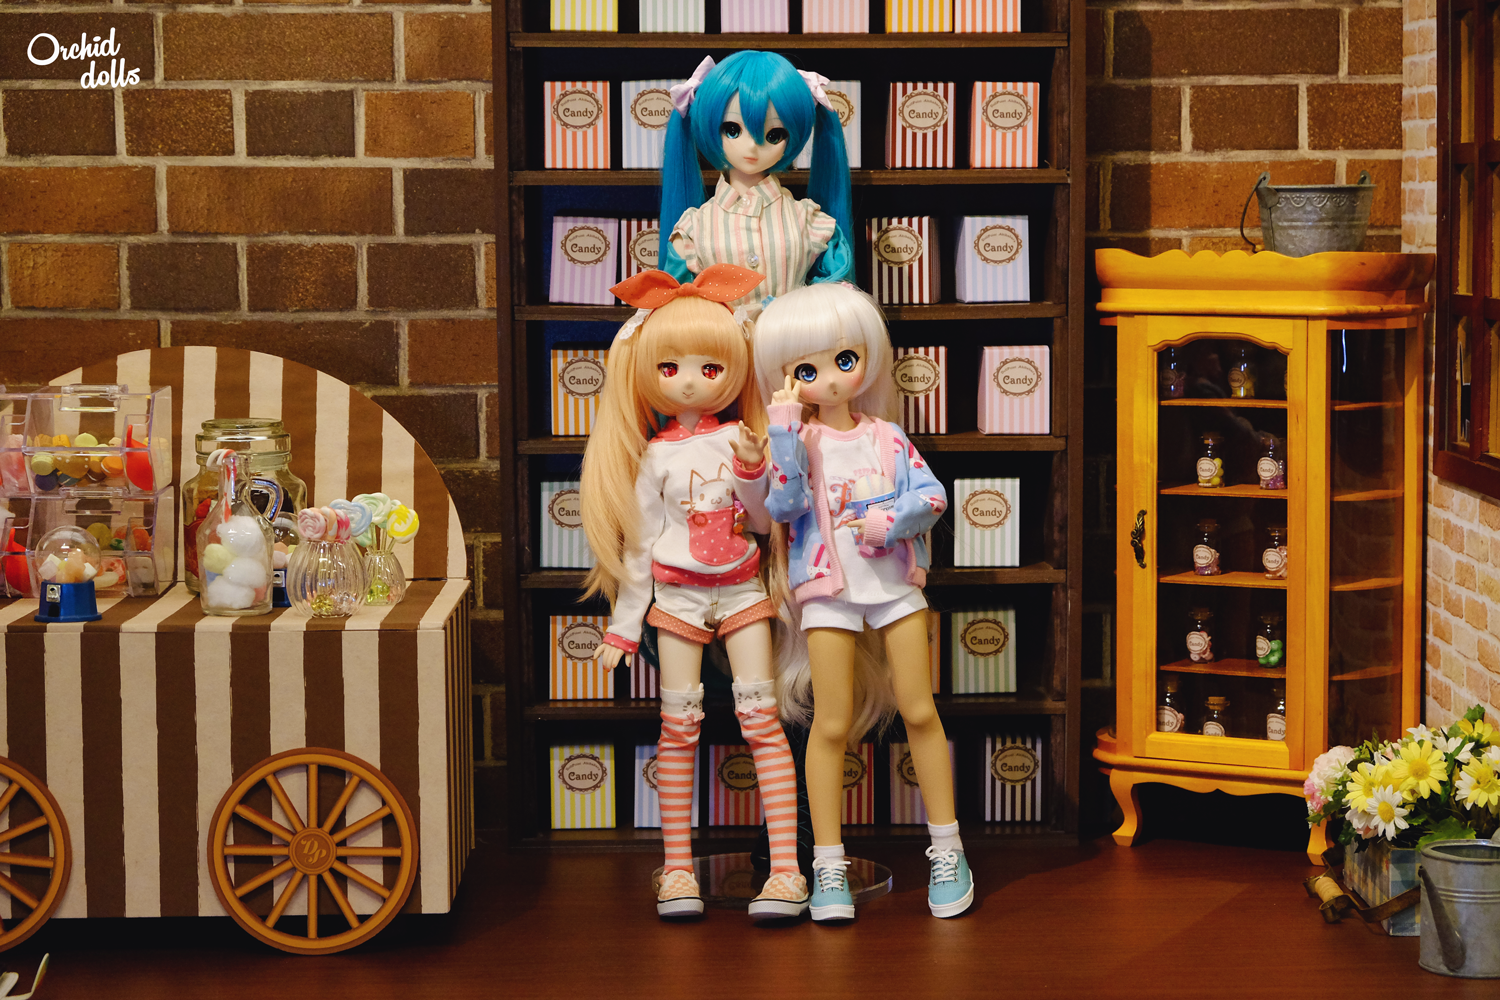 volks Doll Point, Dollfie Dream Miku Hatsune, Mini Dollfie Dream